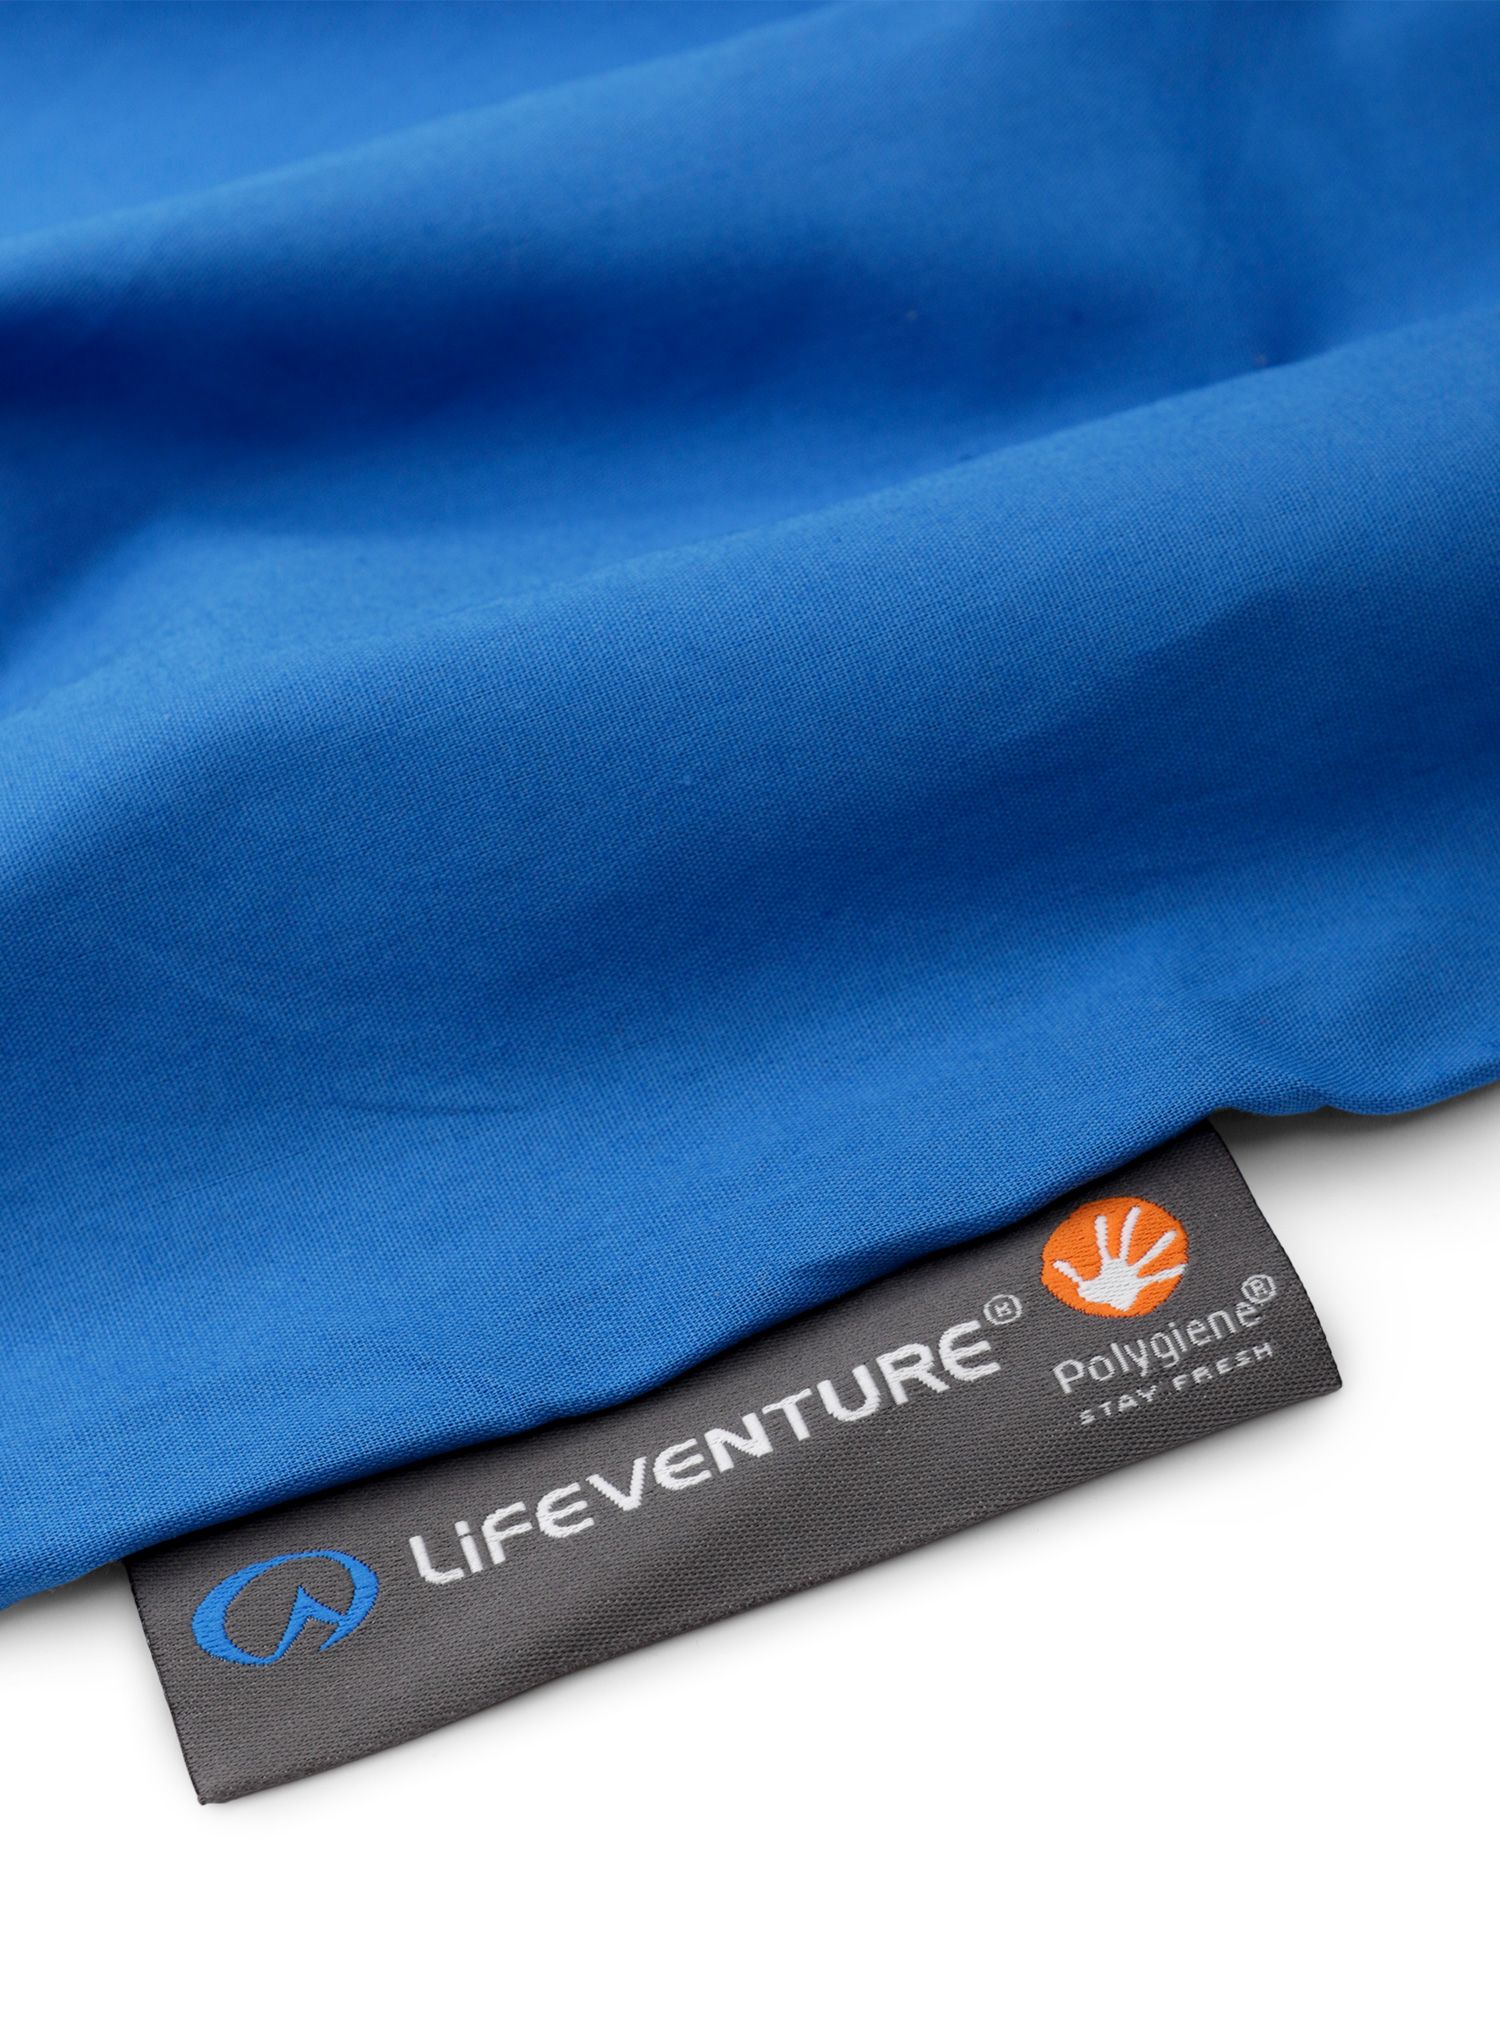 Wkładka Lifeventure Cotton Sleeping Bag Liner Rectangular - blue - zdjęcie nr. 4